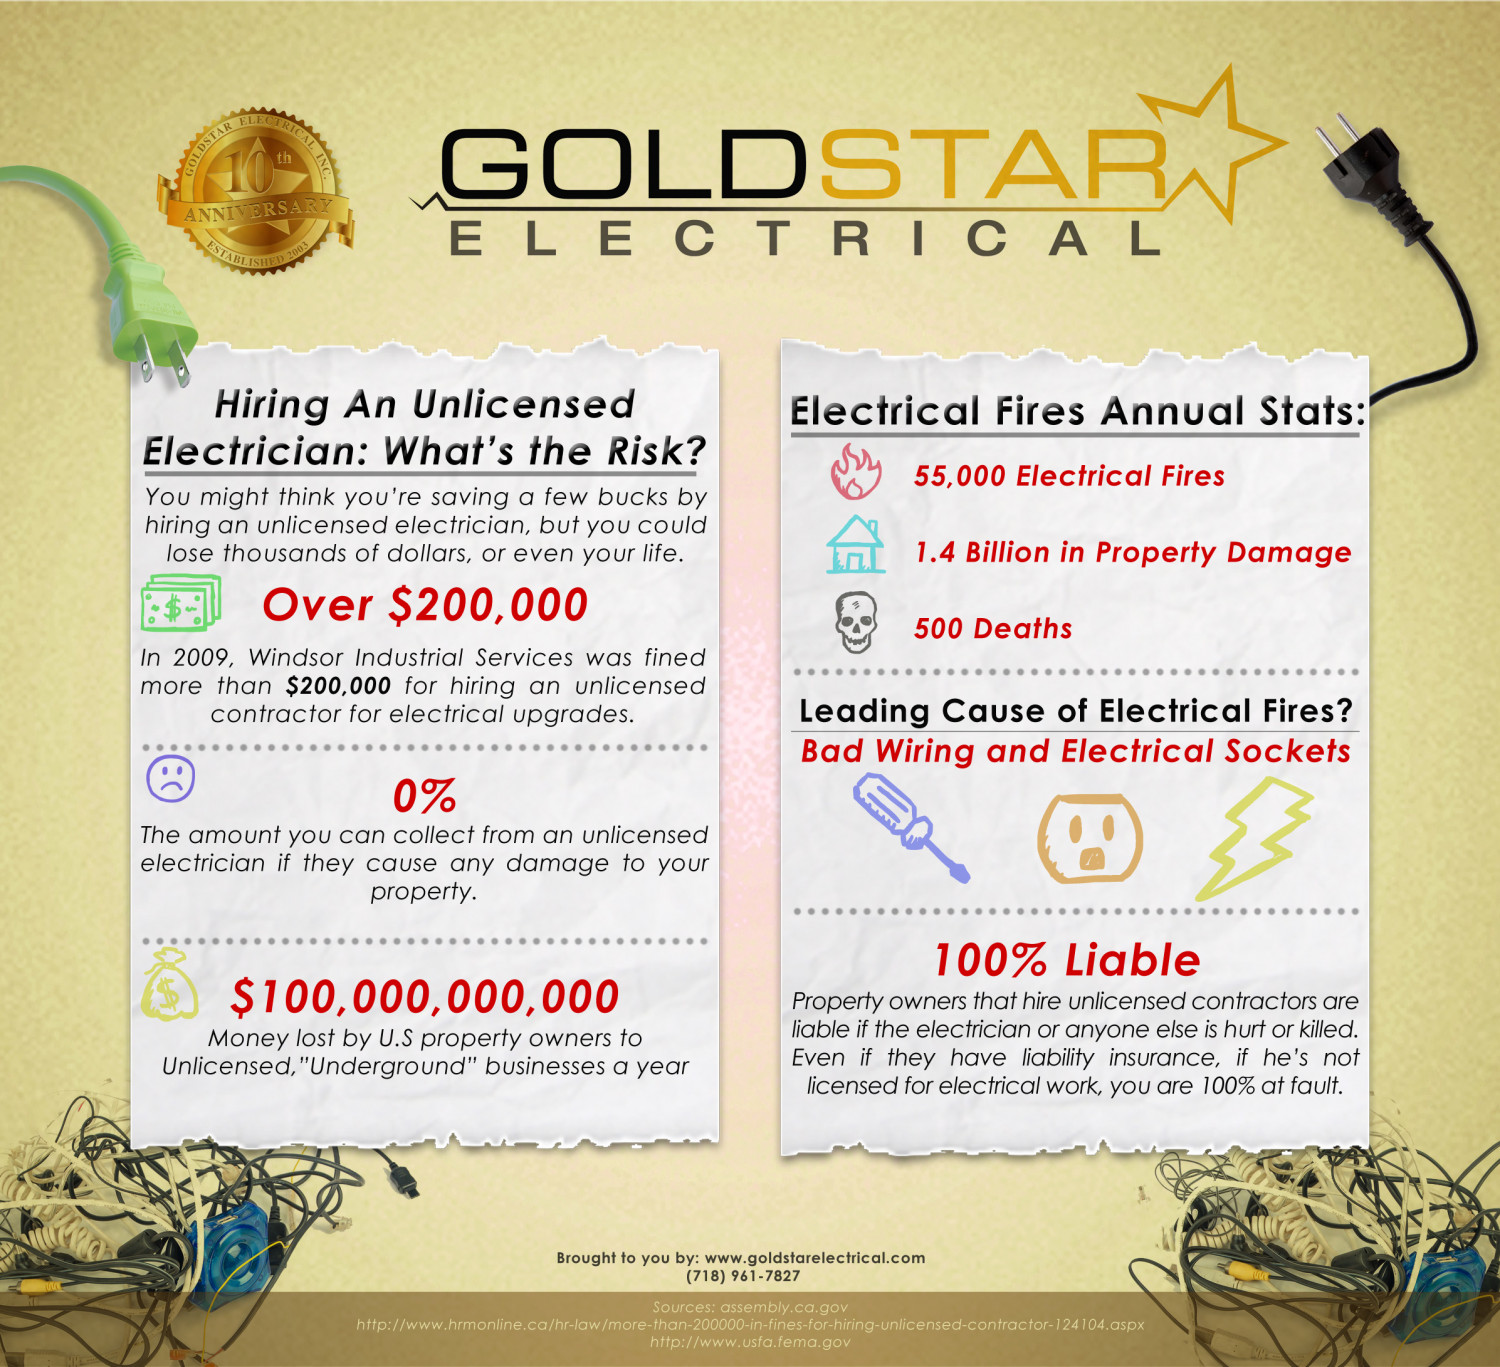 Hiring an Unlicensed Electrician: What's the Risk? Infographic